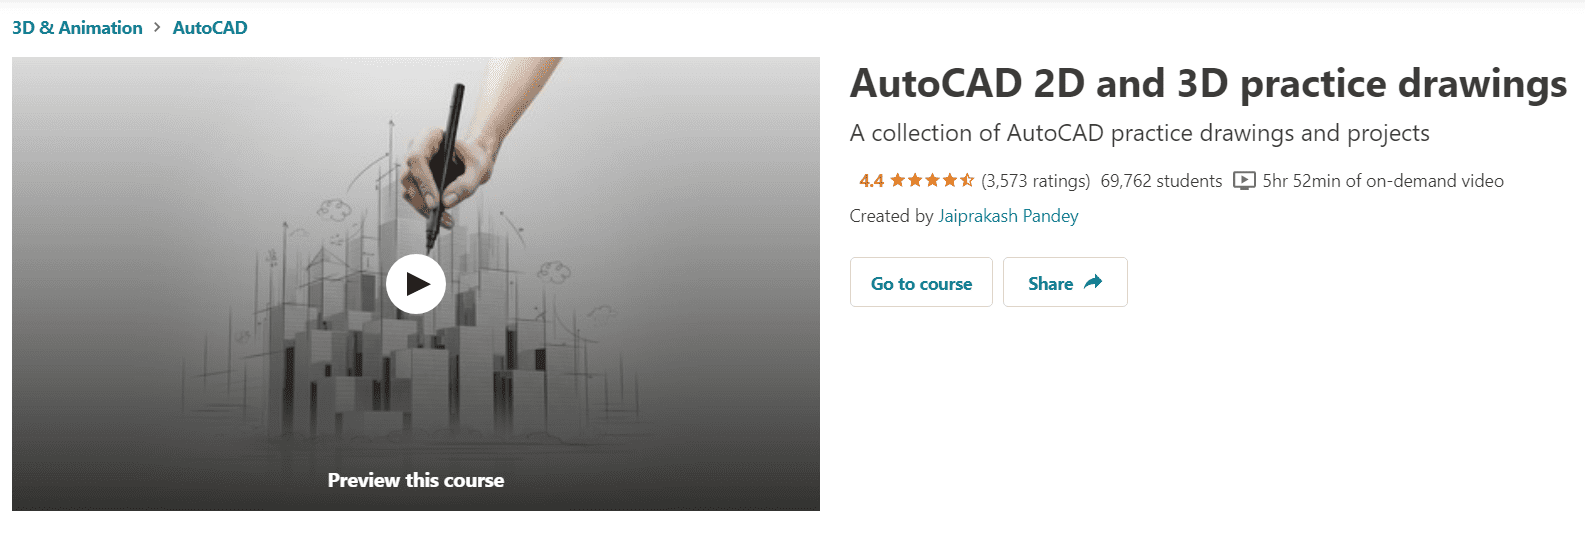 Udemy AutoCAD 2D and 3D Practice Drawings Free Course | Free Udemy Course